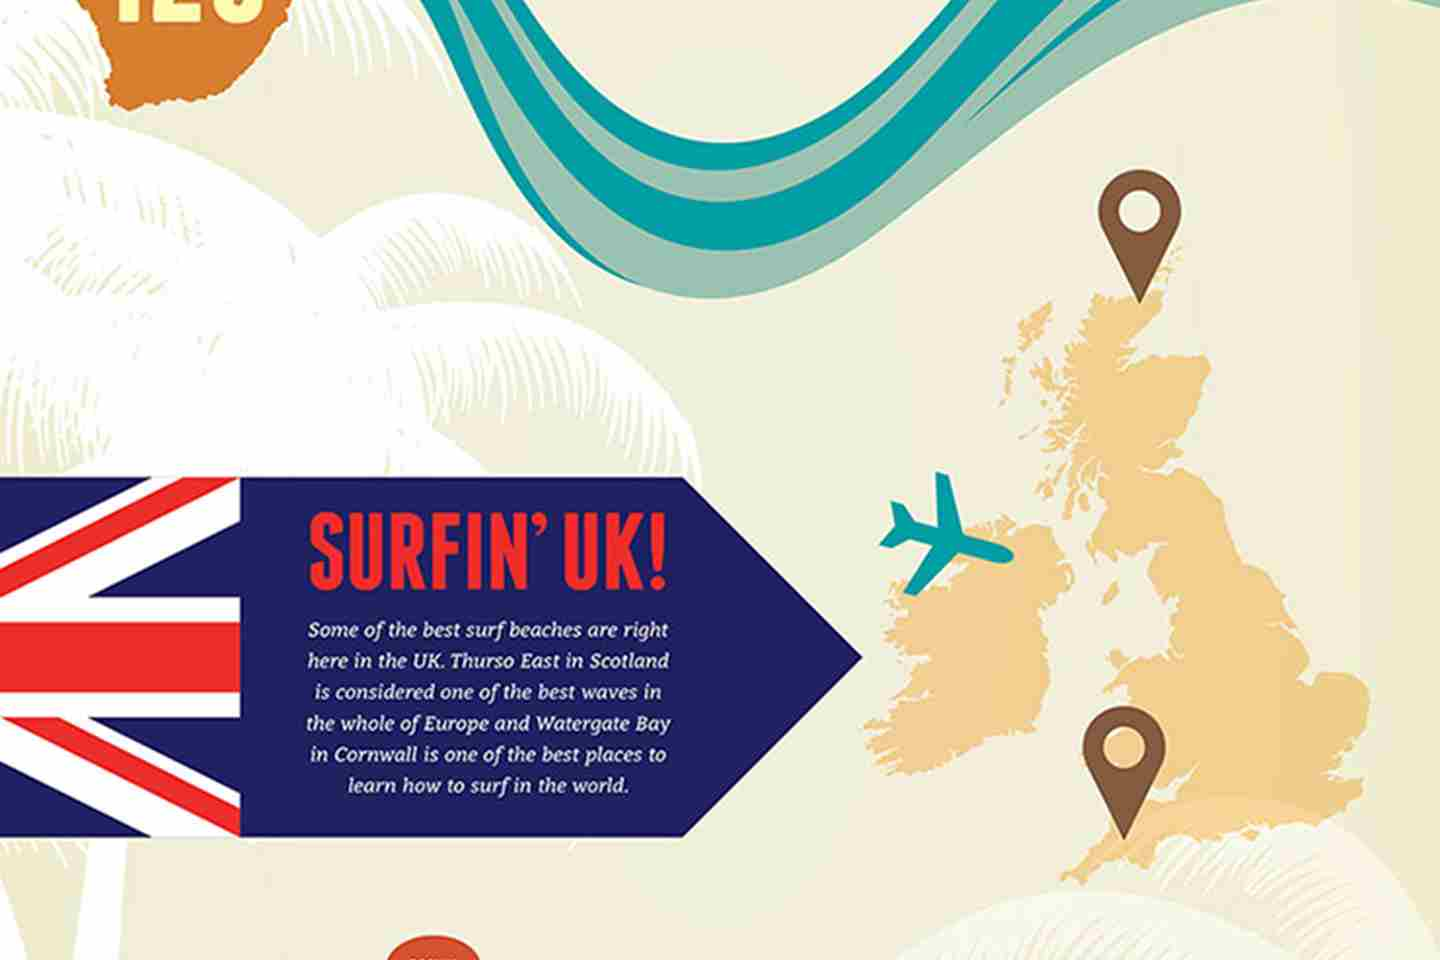 11-Gnarly-Surf-Facts-infographic.jpg